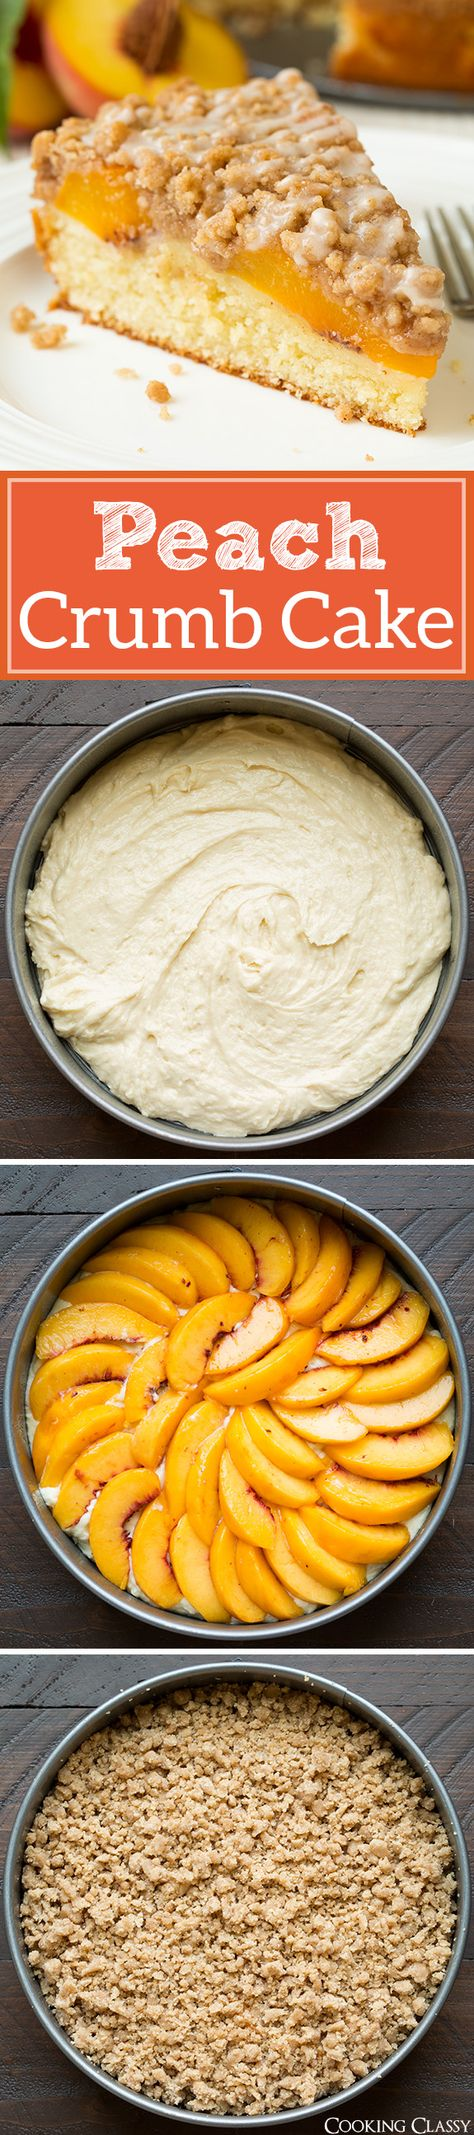 Peach Crumb Cake - tender buttermilk cake, fresh peaches, plenty of cinnamon spiced crumbs and a sweet vanilla glaze. Out of this world good!!